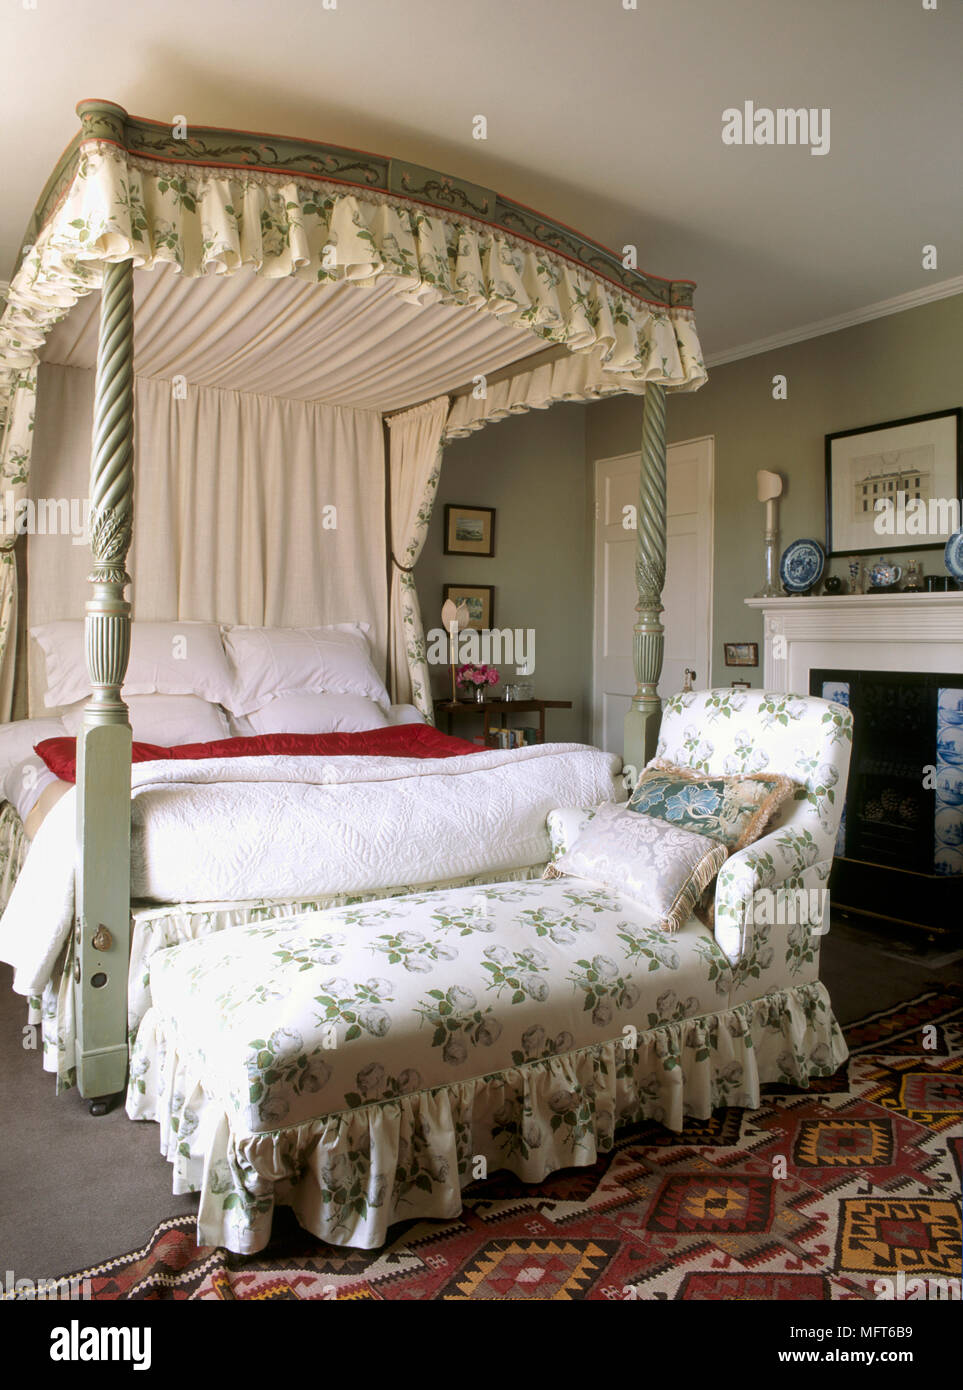 A Traditional Green Bedroom A Painted Four Poster Bed With Floral Fabric Canopy Upholstered Day Bed Fireplace Stock Photo Alamy